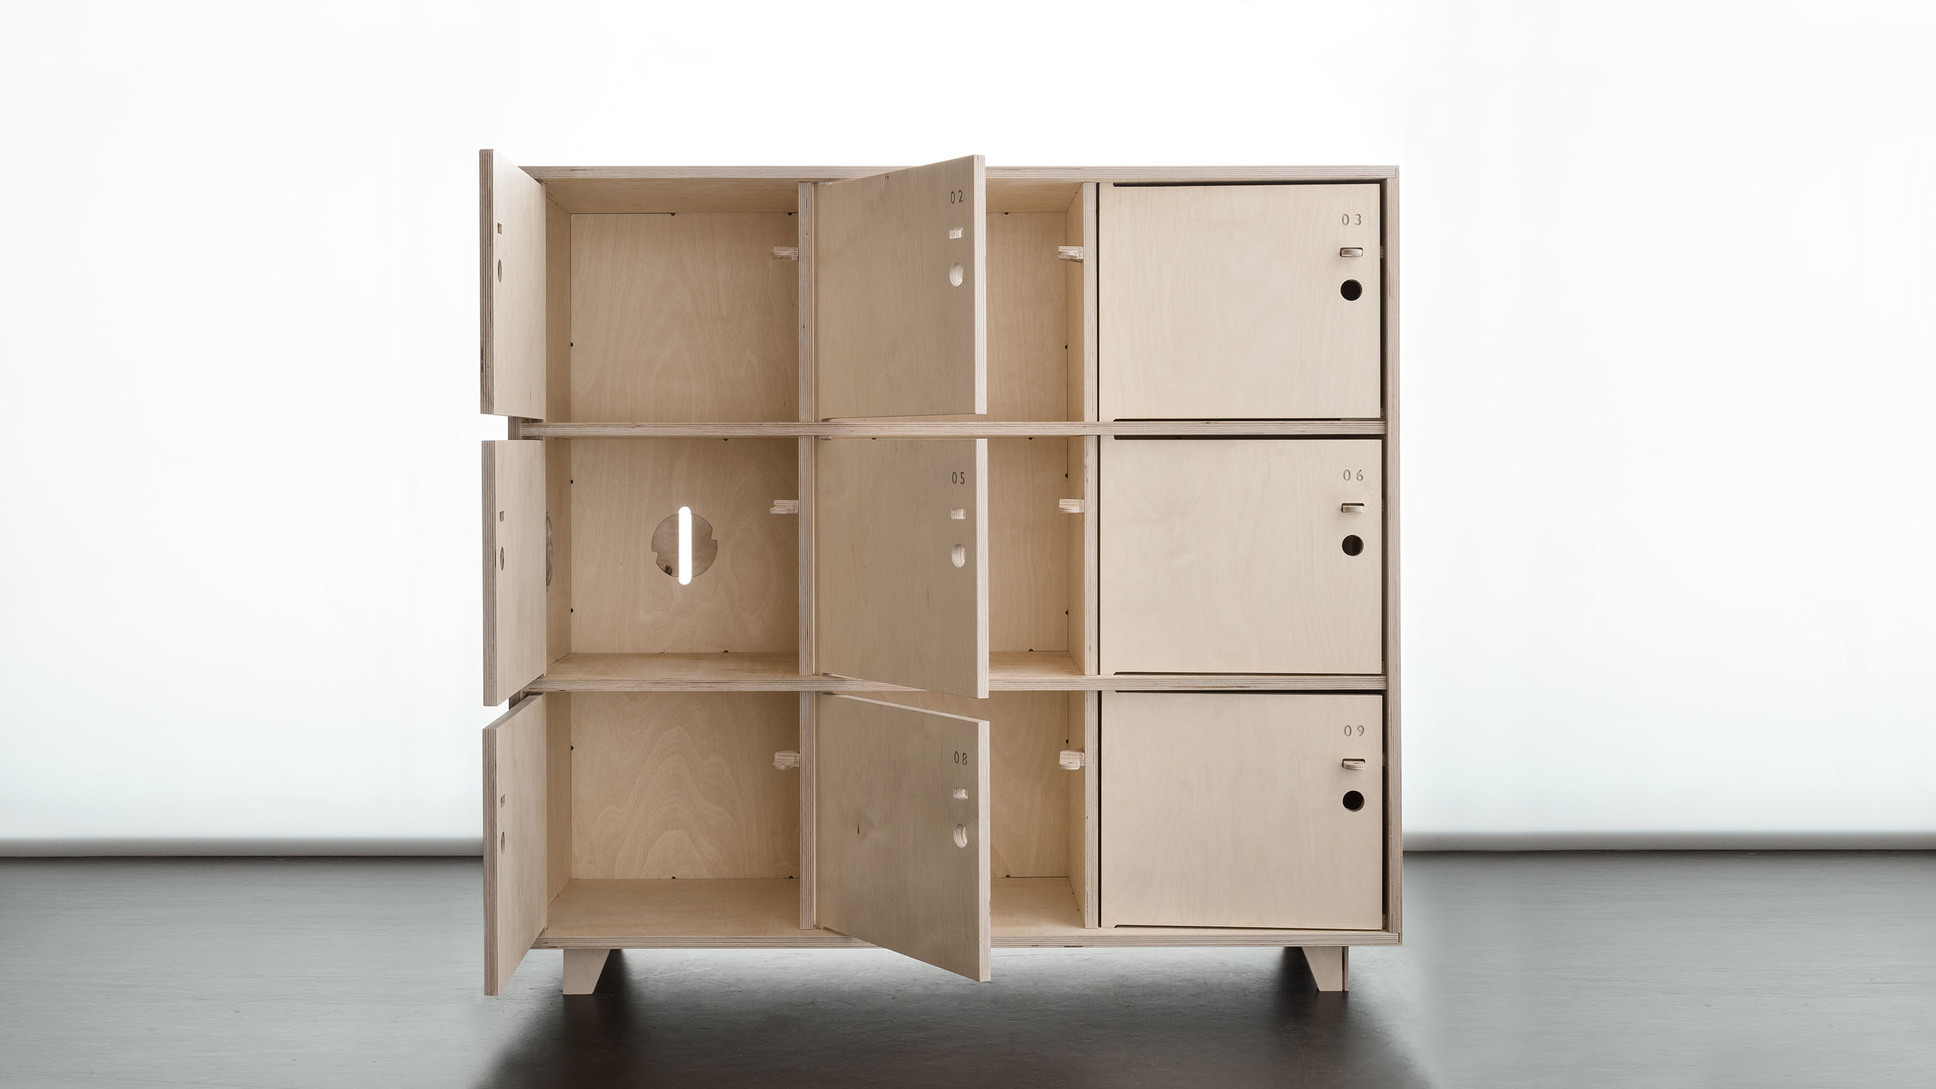 rangement bureau avec porte en bois fin locker opendesk openwood. Black Bedroom Furniture Sets. Home Design Ideas